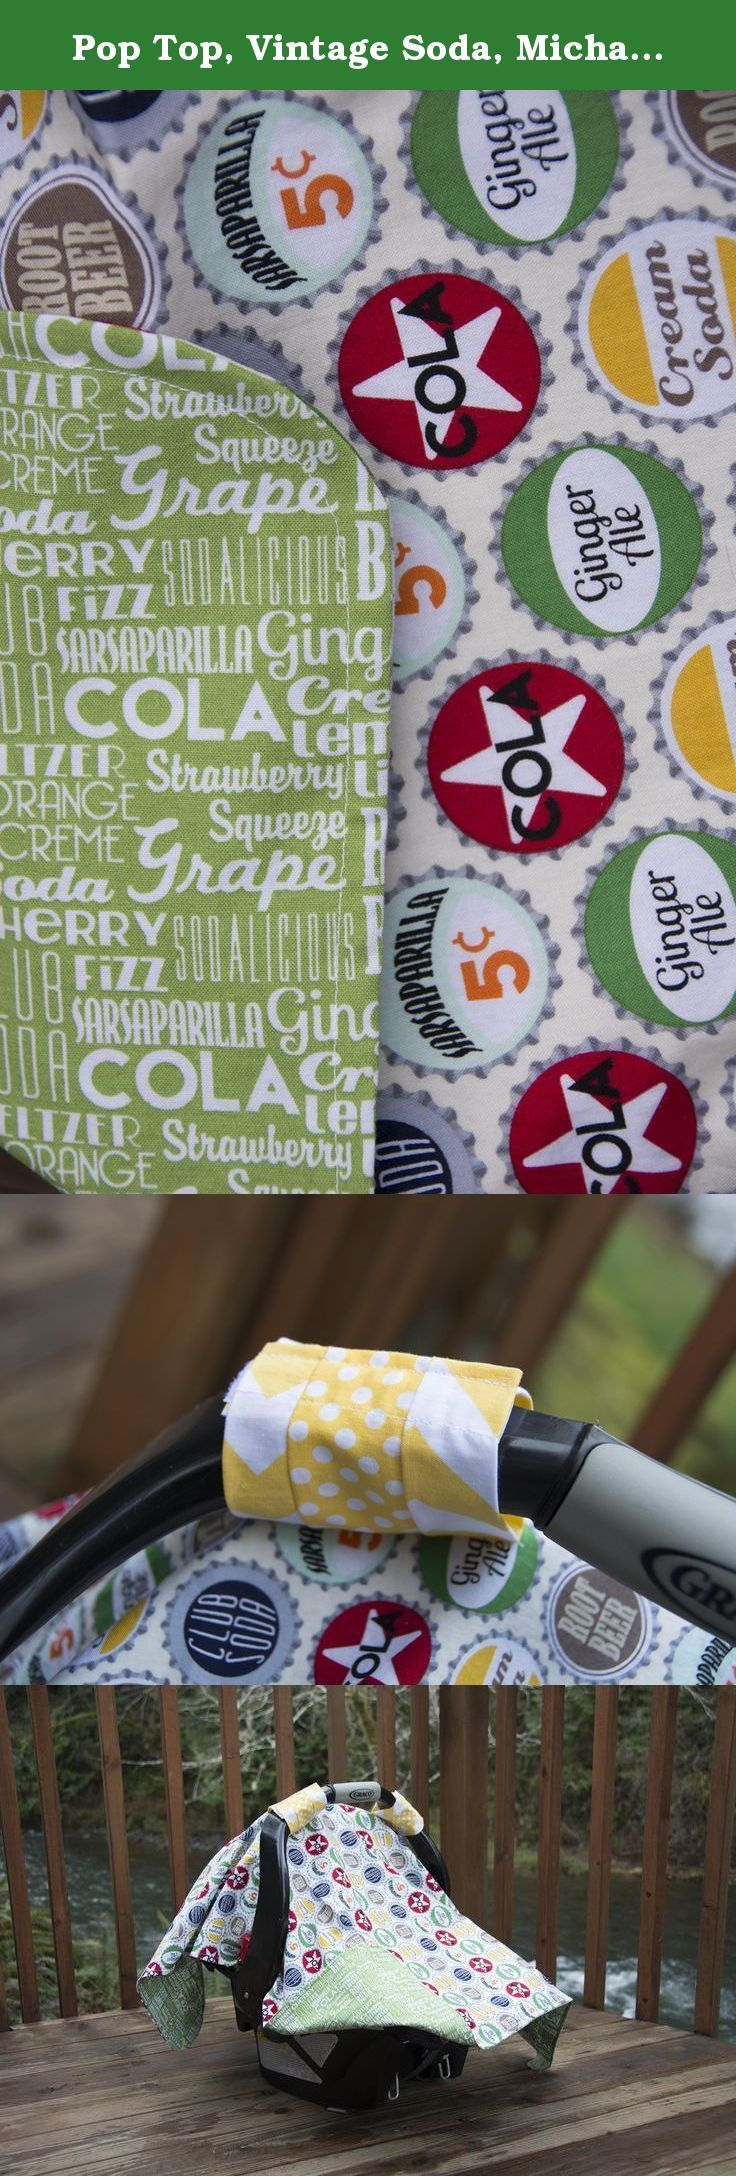 Pop Top, Vintage Soda, Michael Miller Unisex Infant Car Seat Cover/Canopy. This listing is for a ONE OF A KIND Michael Miller, Pop Top, Vintage Soda cover, featuring a cuddly teddy bear with playful bumble bees. Perfect for BOY or GIRL this cover features tones of blue, yellow, and green! Our handmade infant car seat covers for baby boys and baby girls are essential to keeping your baby covered, protected, and happy. These help protect them from harsh sunlight, rain, snow and wind…